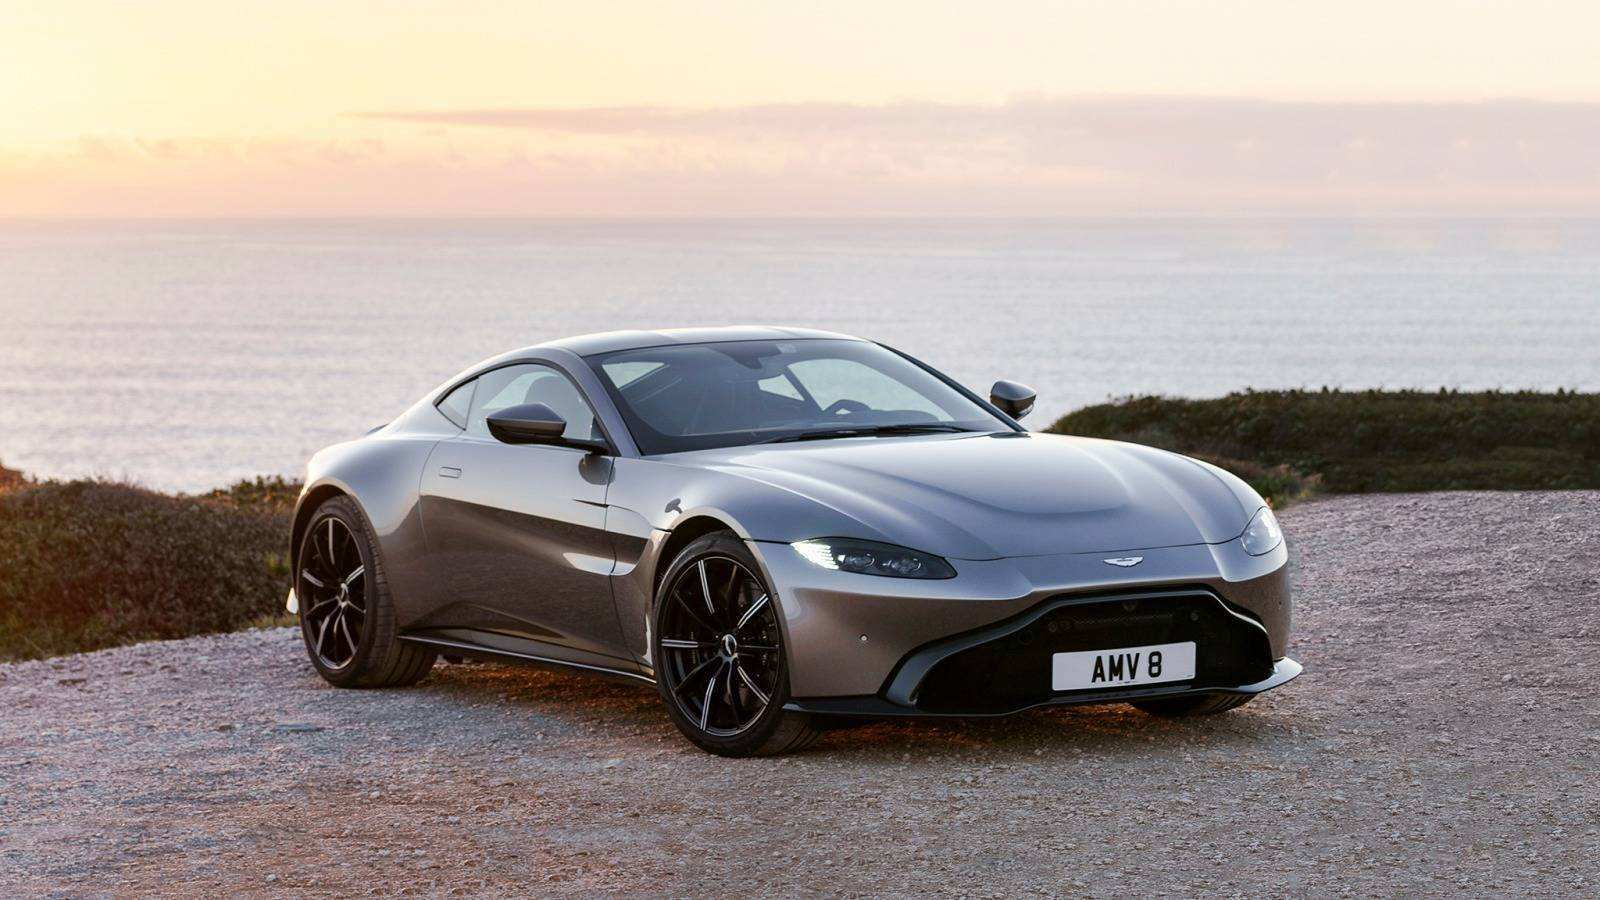 59 Best Review 2019 Aston Martin Vantage For Sale Ratings with 2019 Aston Martin Vantage For Sale